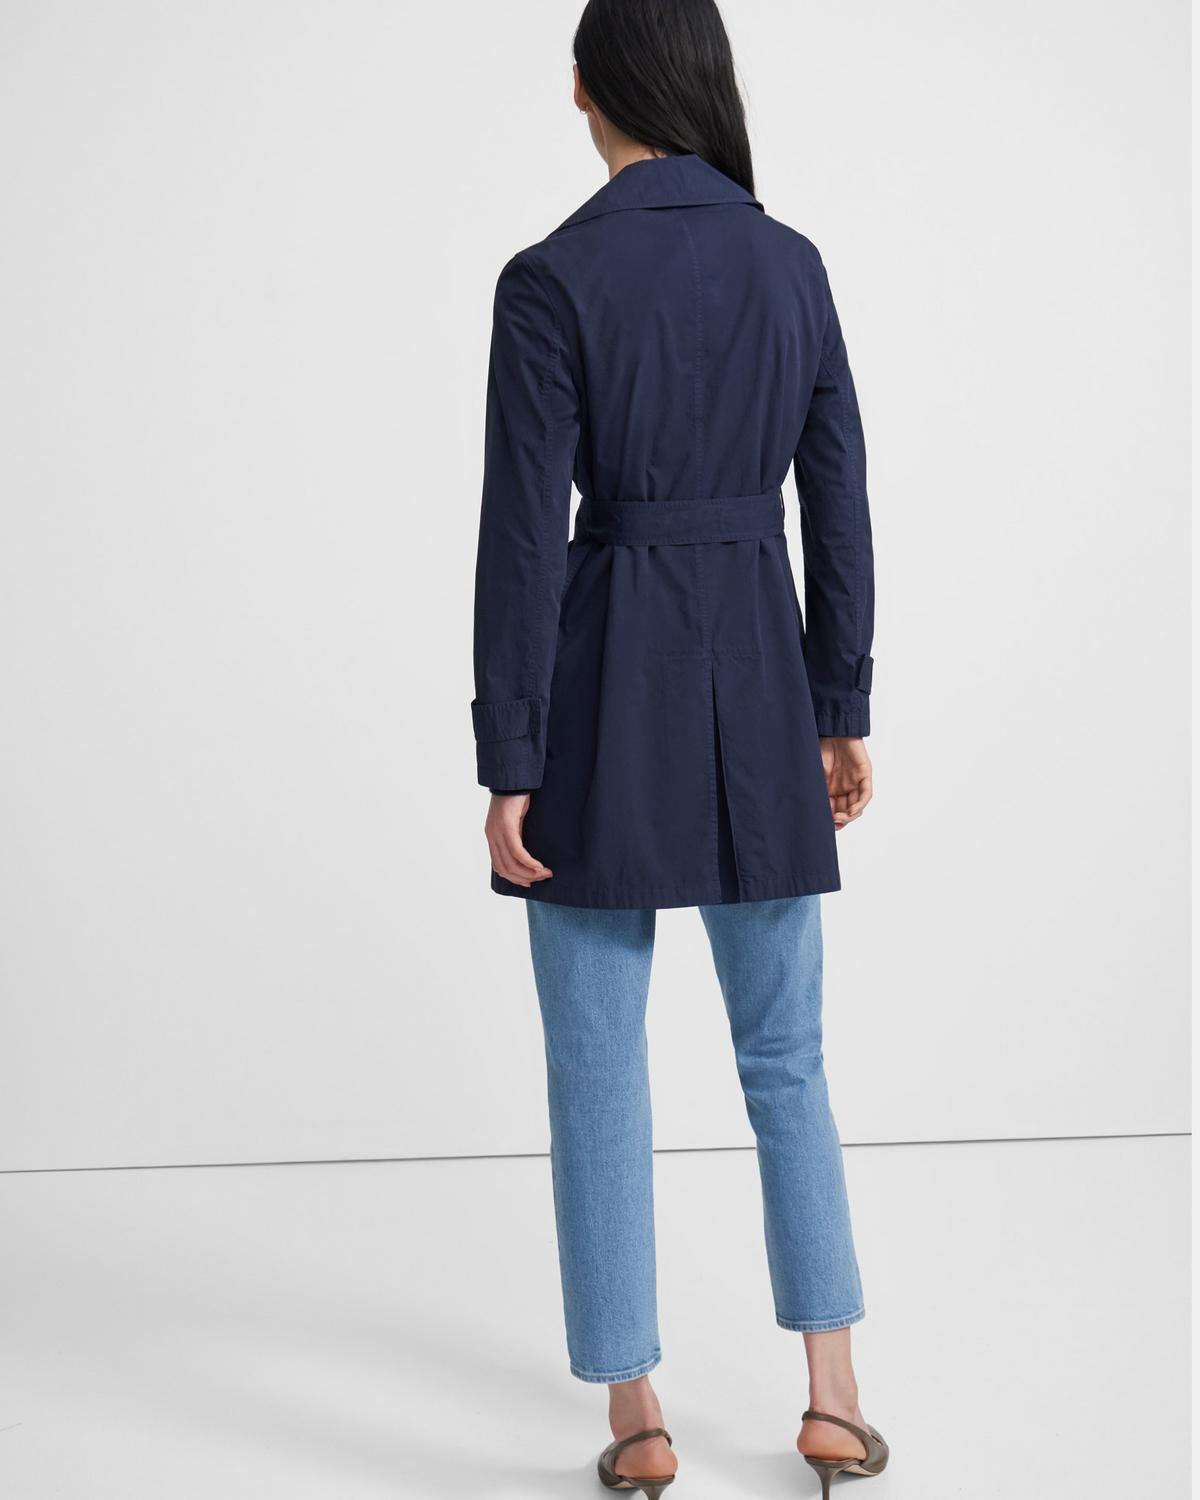 Oaklane Short Trench Coat in Garment Dyed Chino